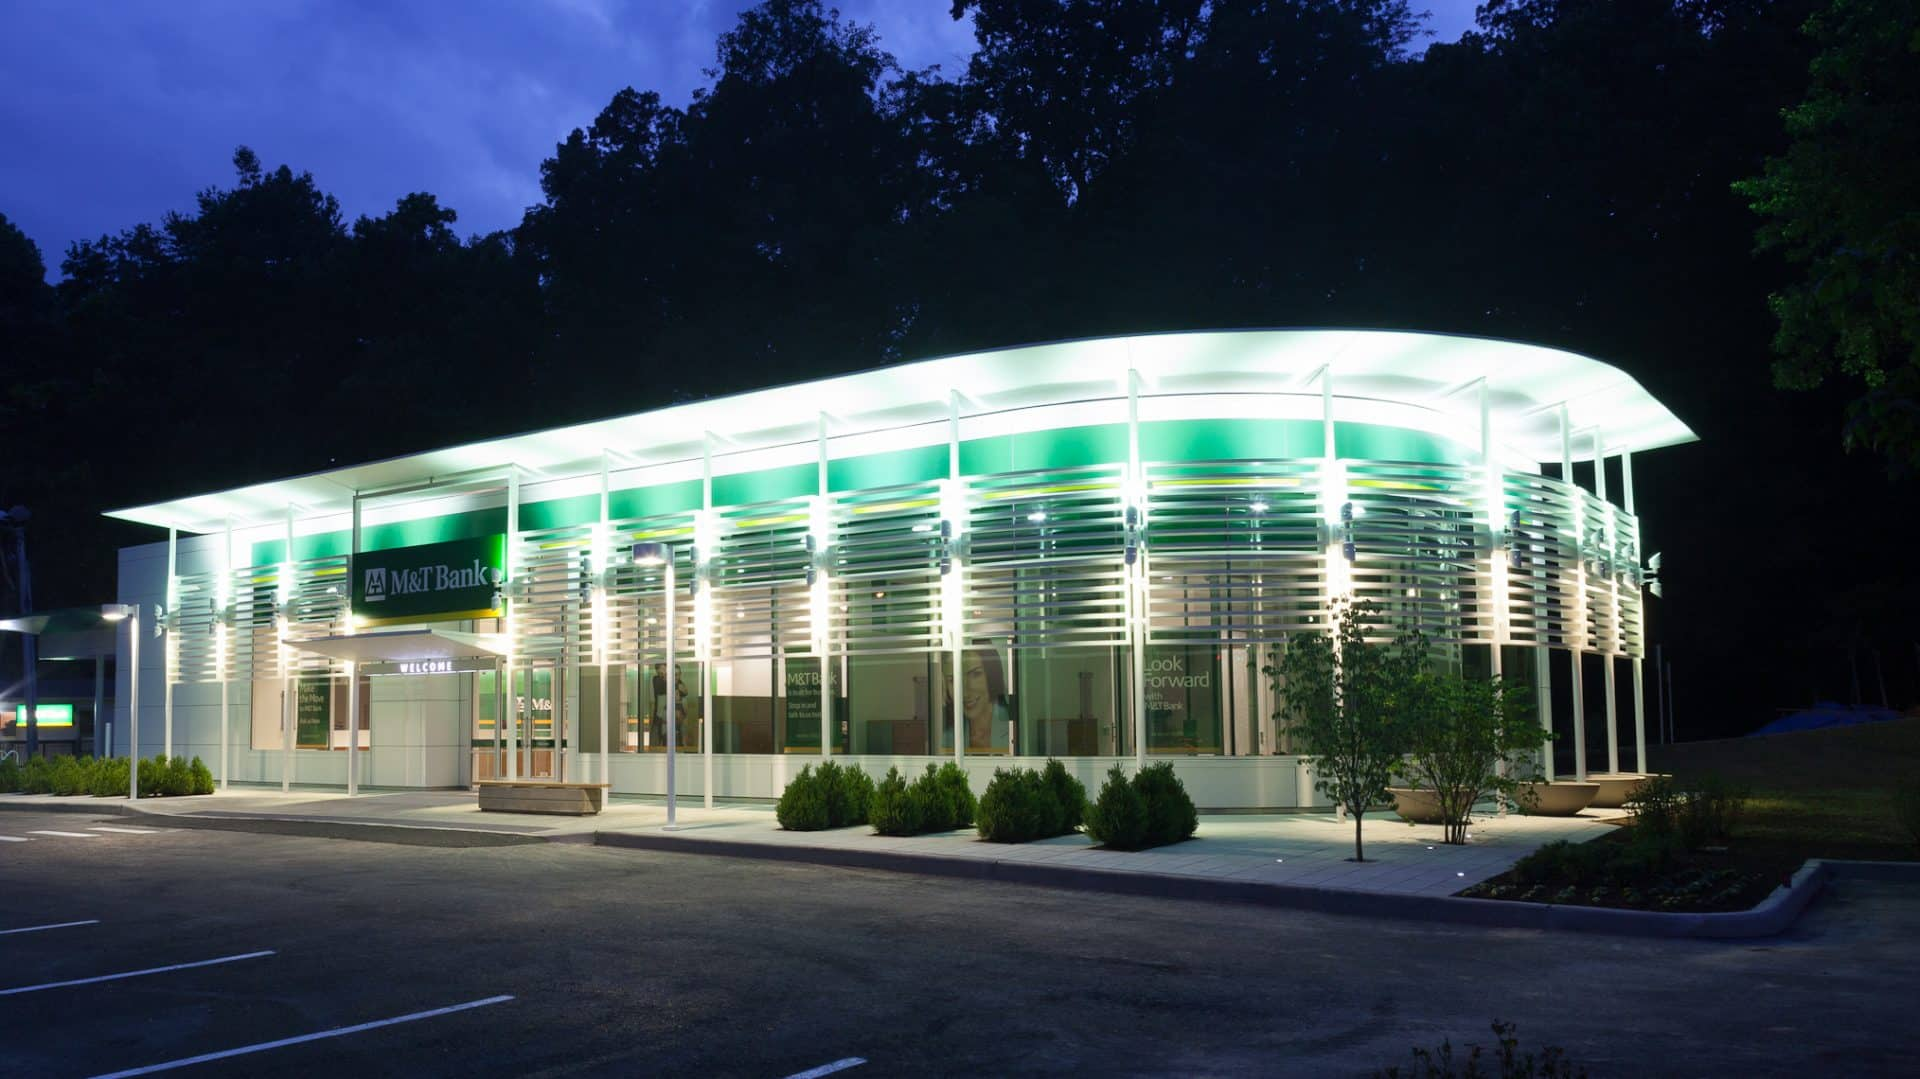 Exterior evening view of M&T Bank - LEED Consulting Project